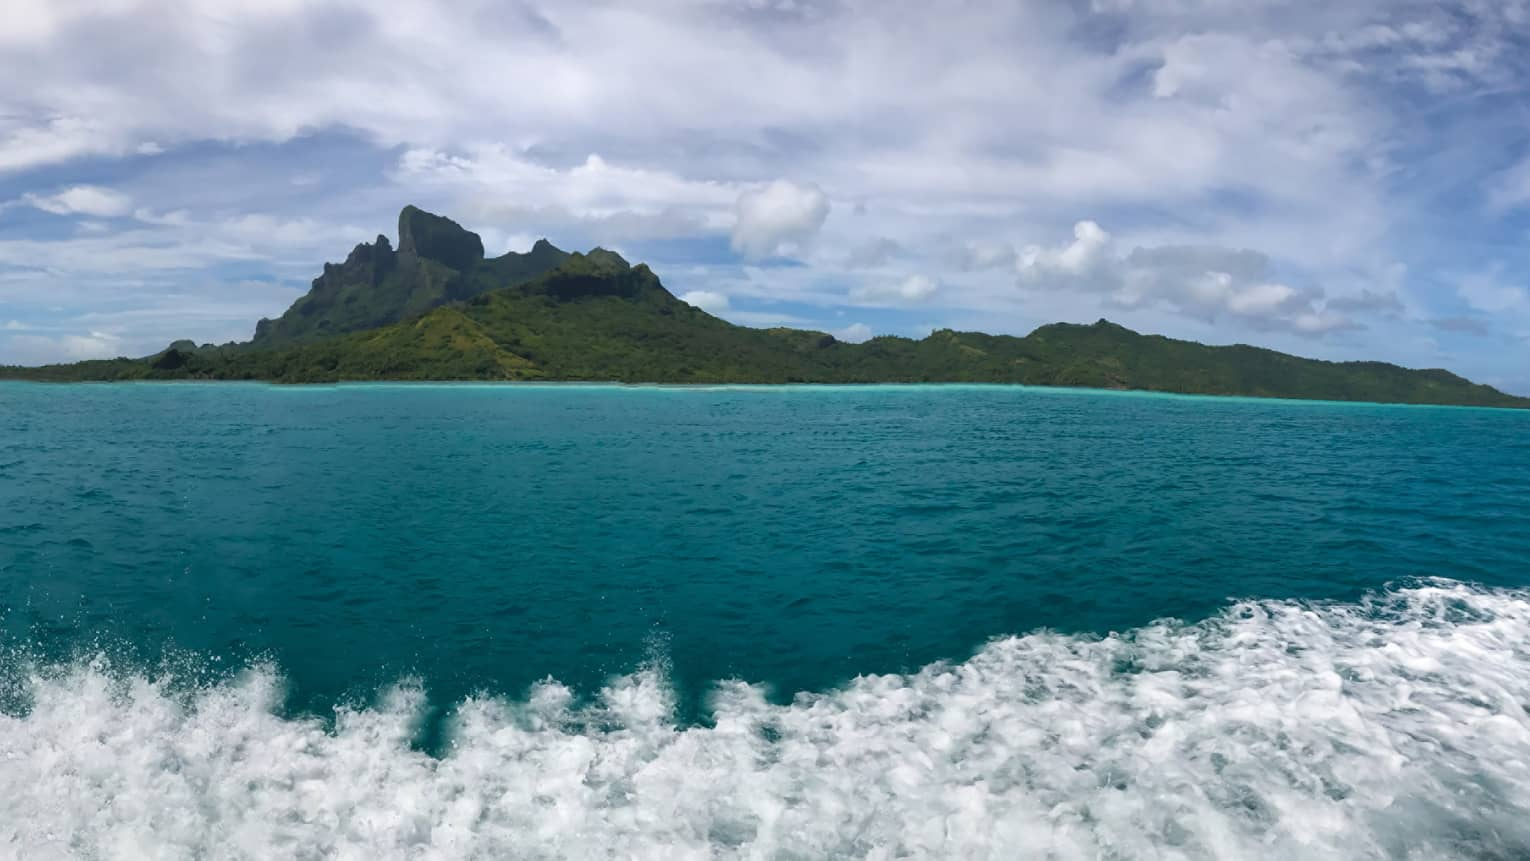 View of deep turquoise water in Bora Bora, with mountains in the distance